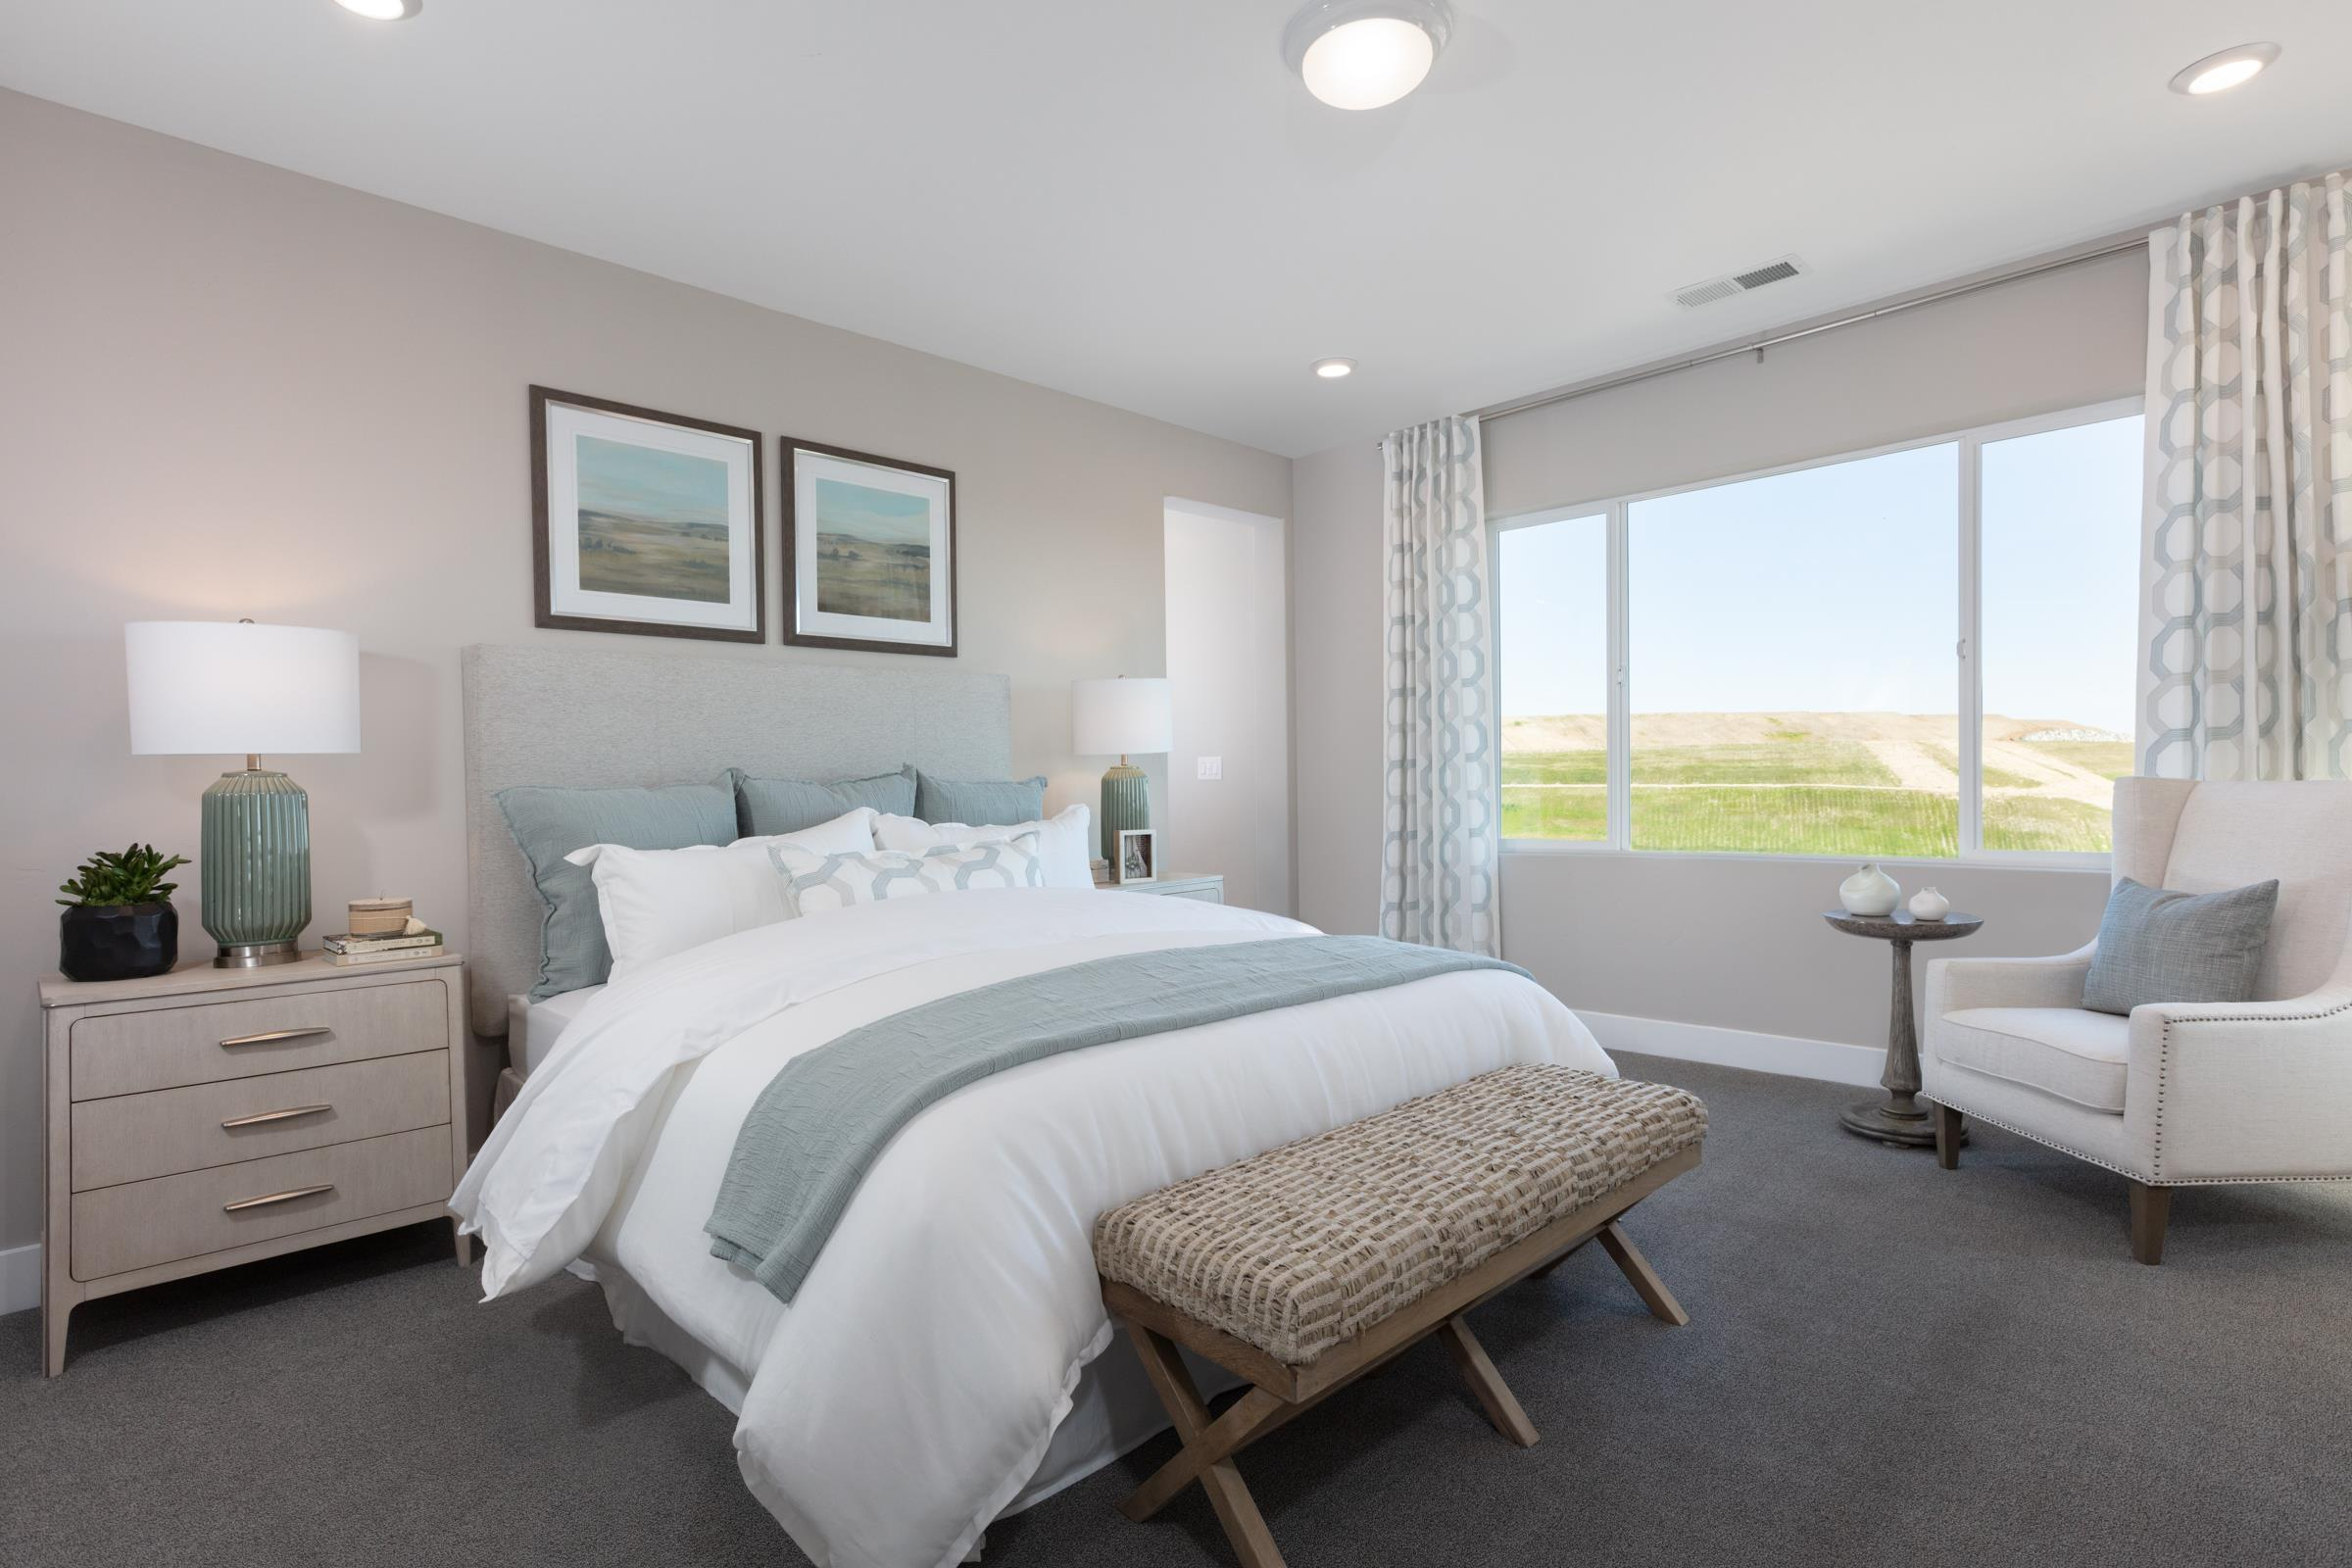 Bedroom featured in the Plan 4 Iron Ridge By Anthem United Homes Inc in Sacramento, CA